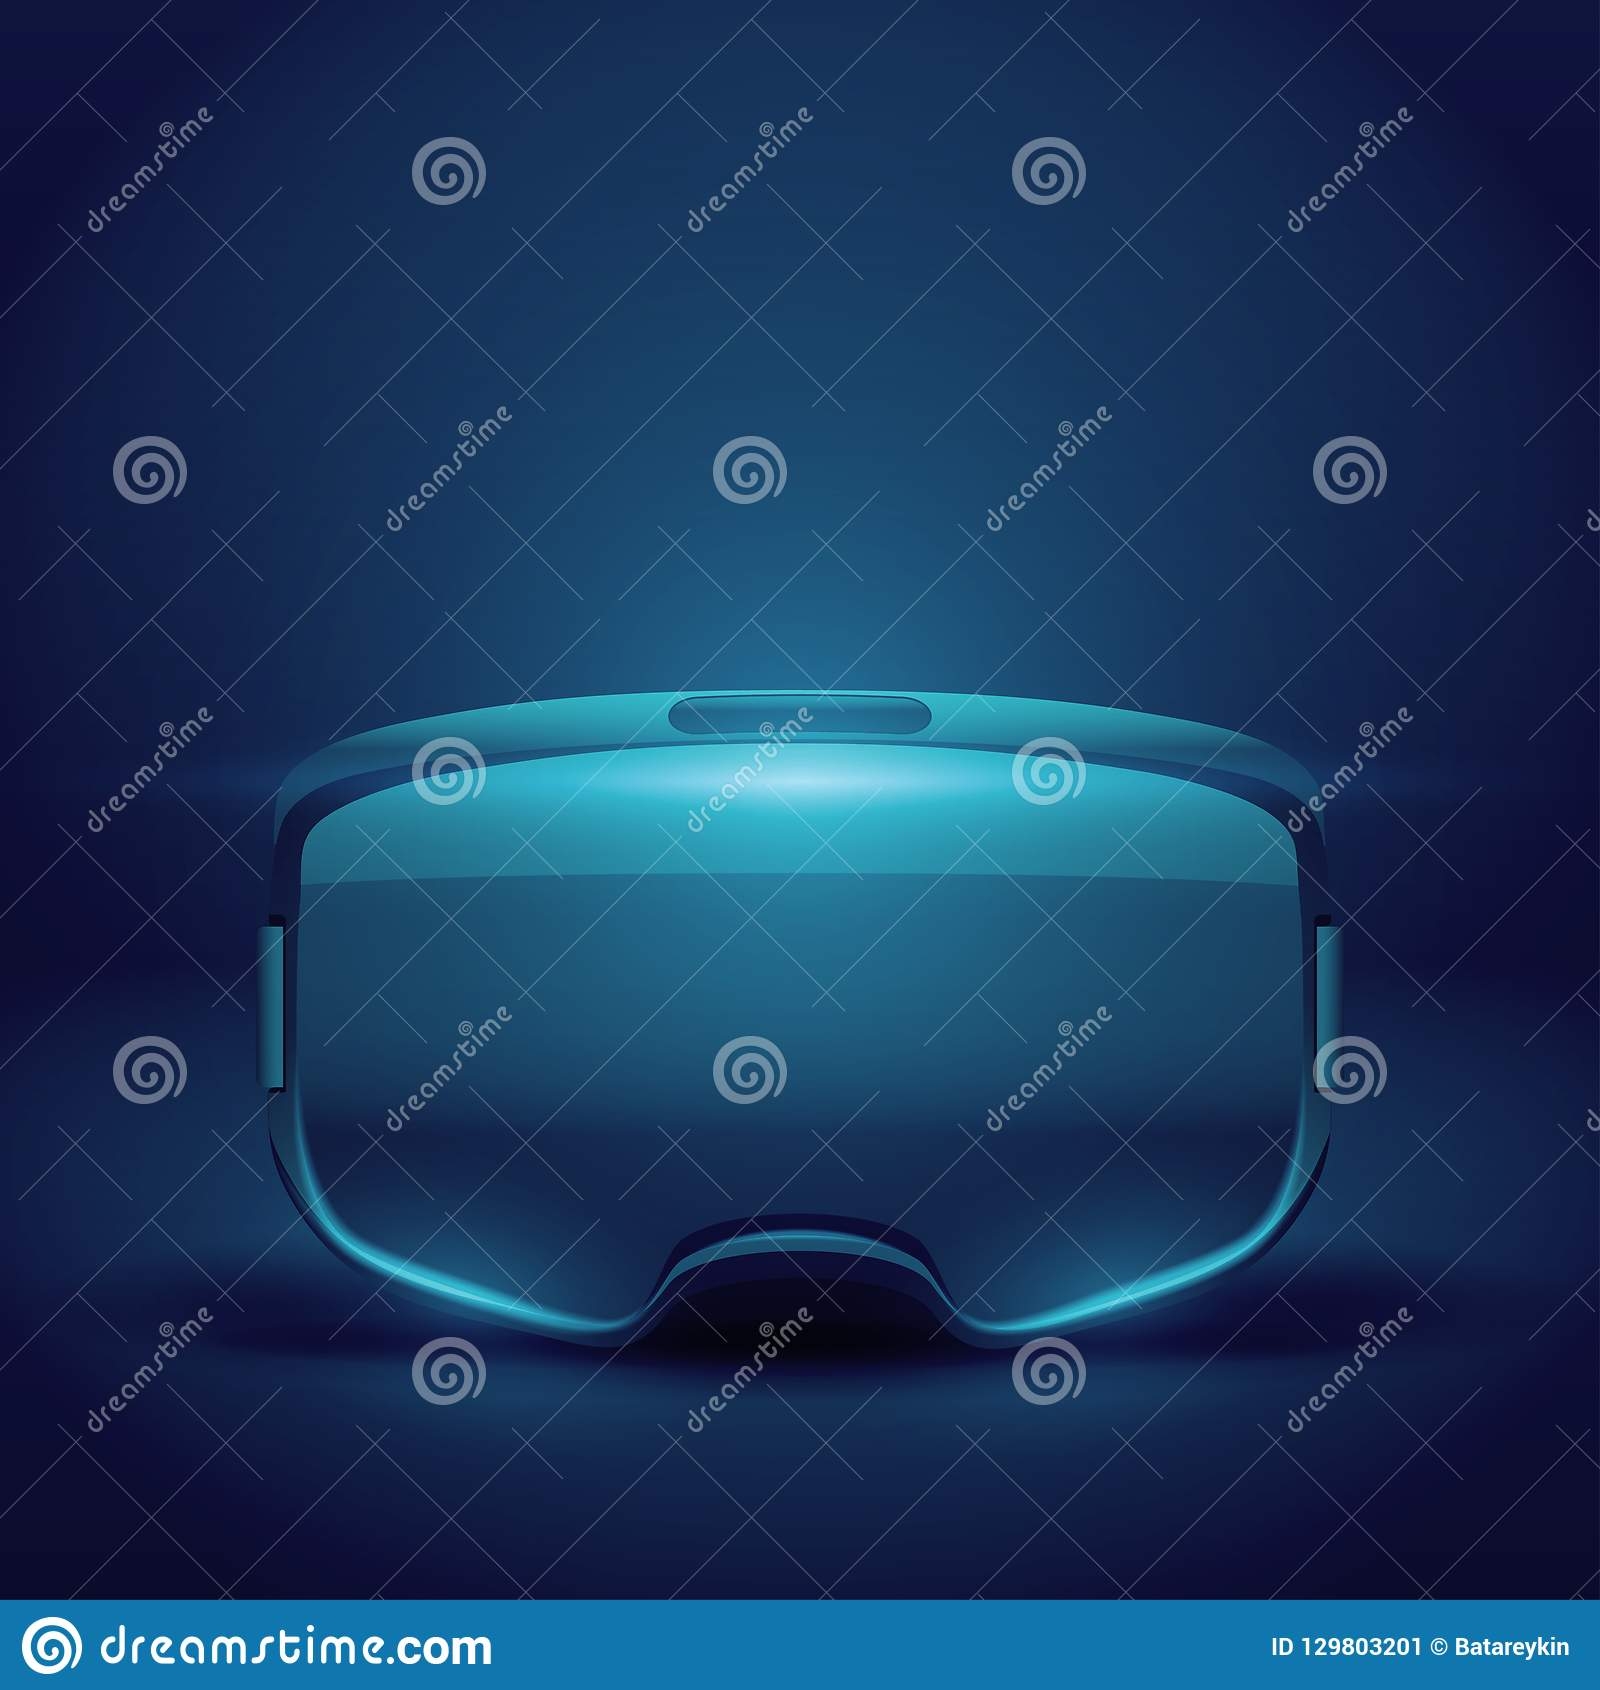 Stereoscopic 3d VR headset presentation